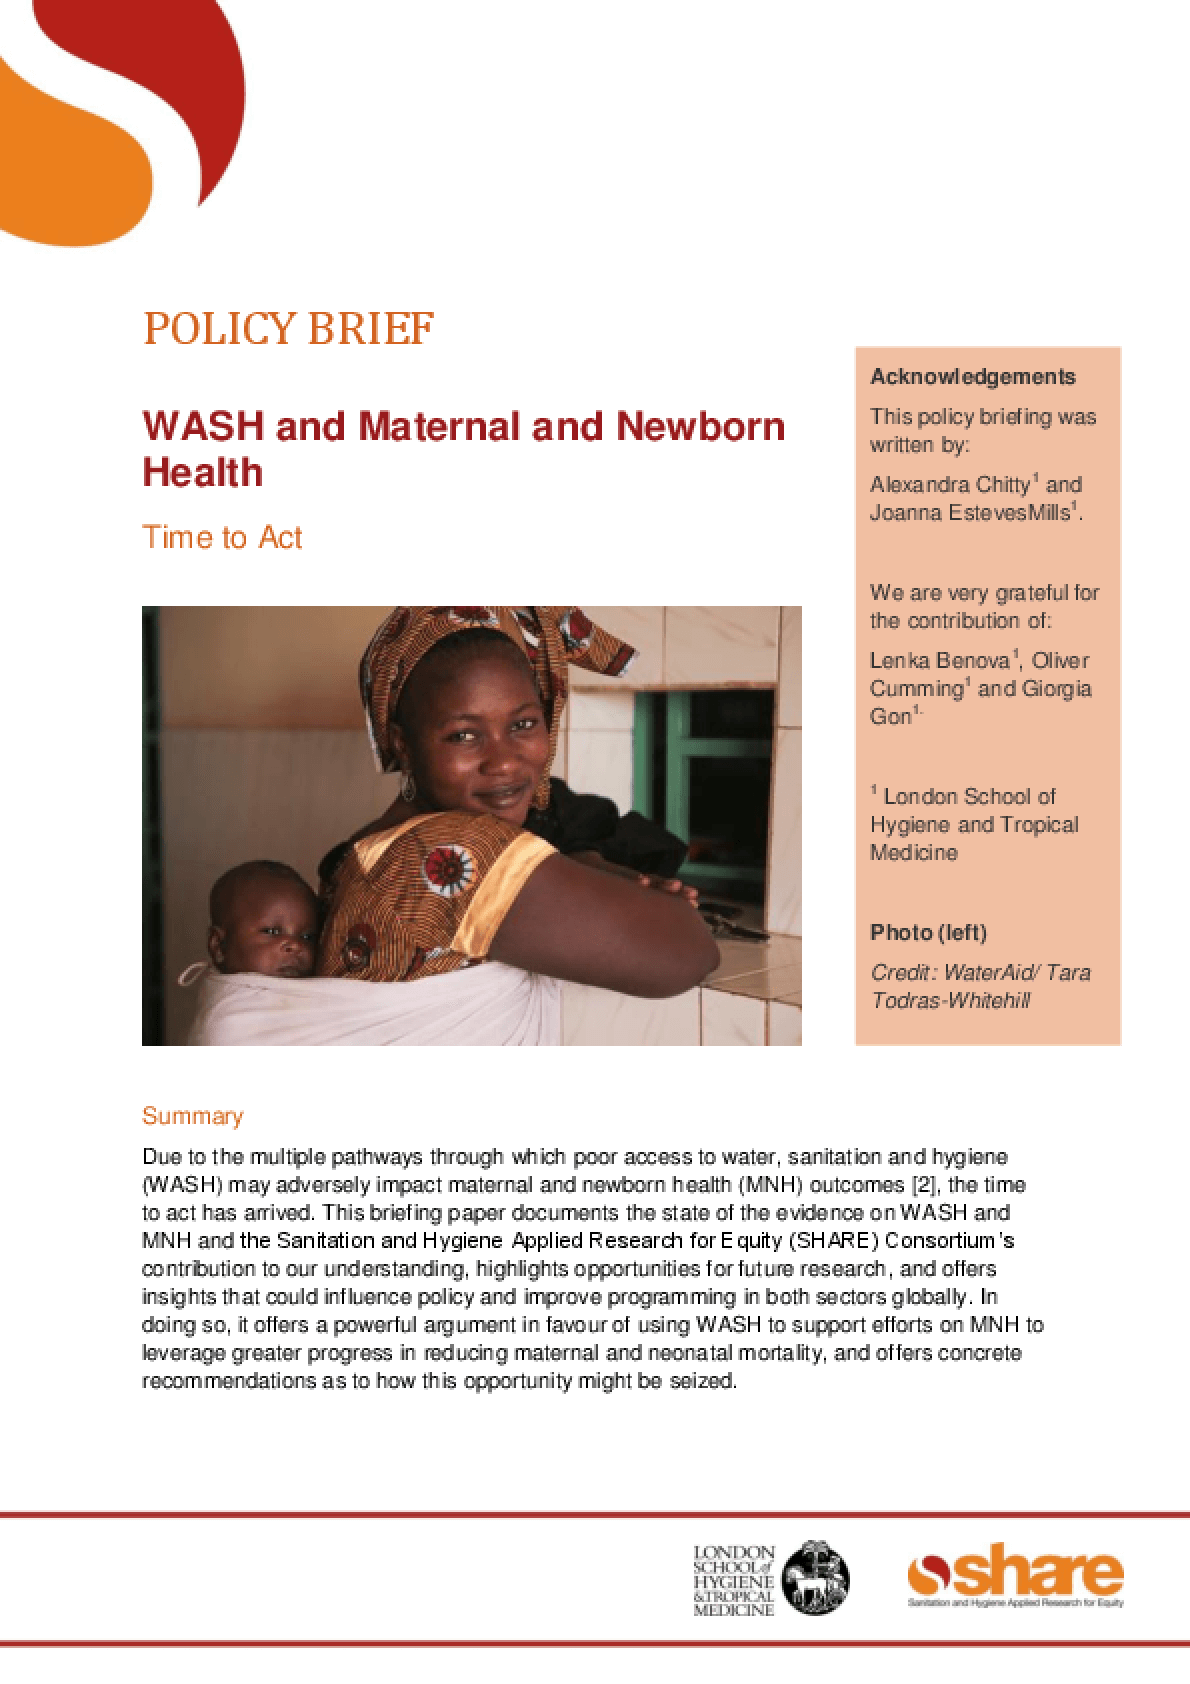 WASH and Maternal and Newborn Health: Time to Act